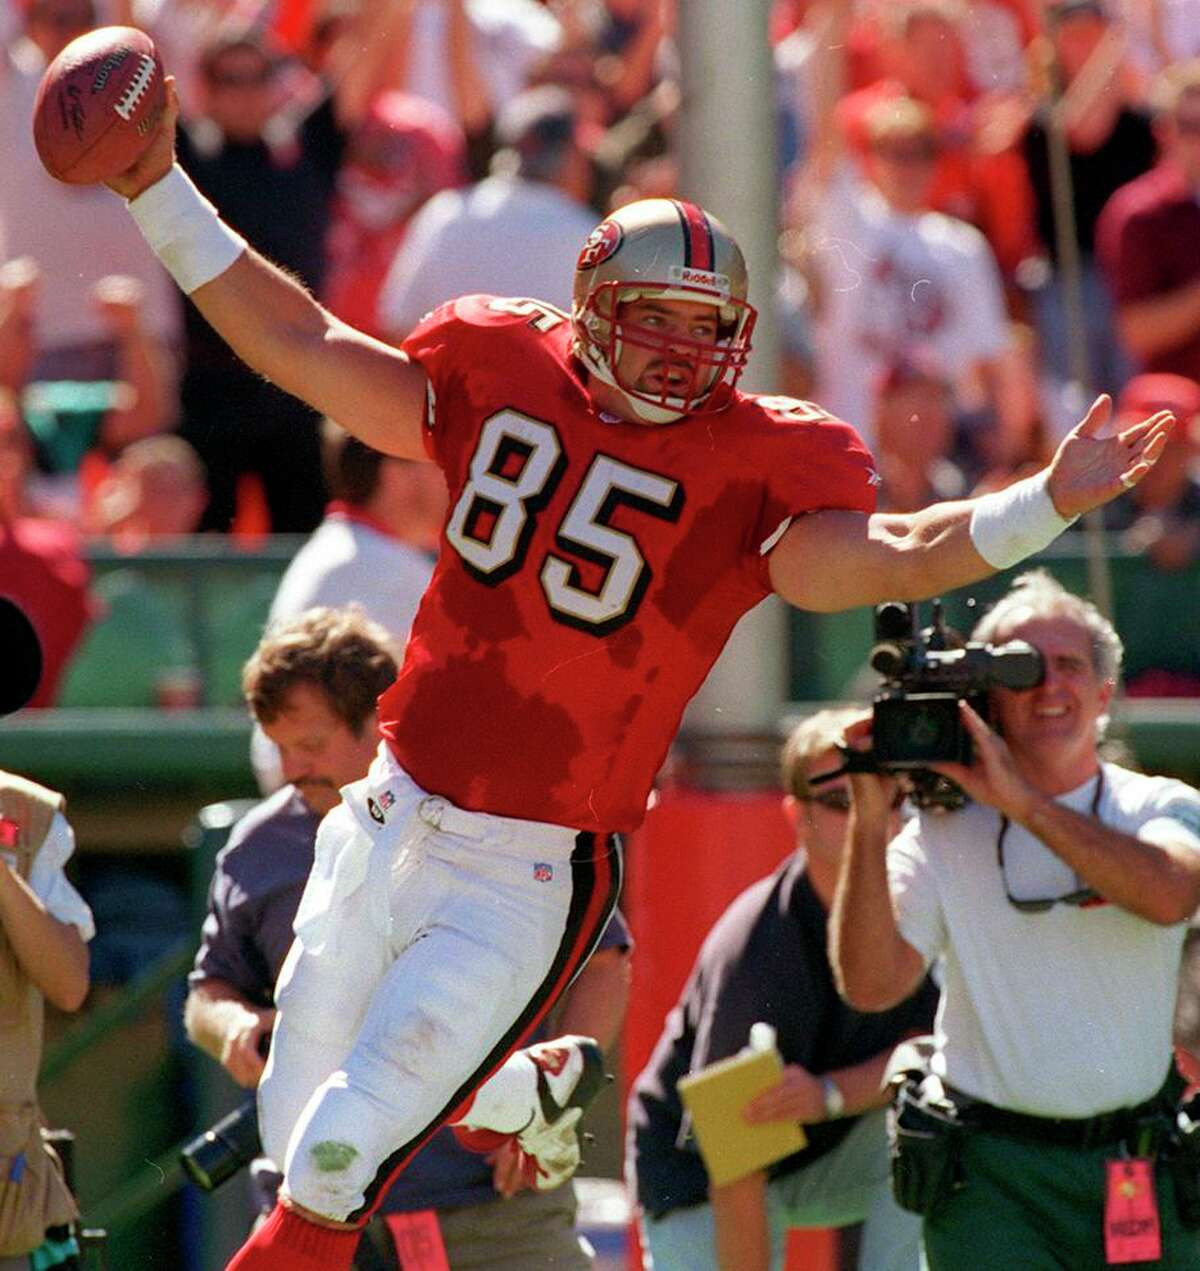 49ers tight end Greg Clark scores his first pro touchdown in the first quarter against the Rams in 1997.